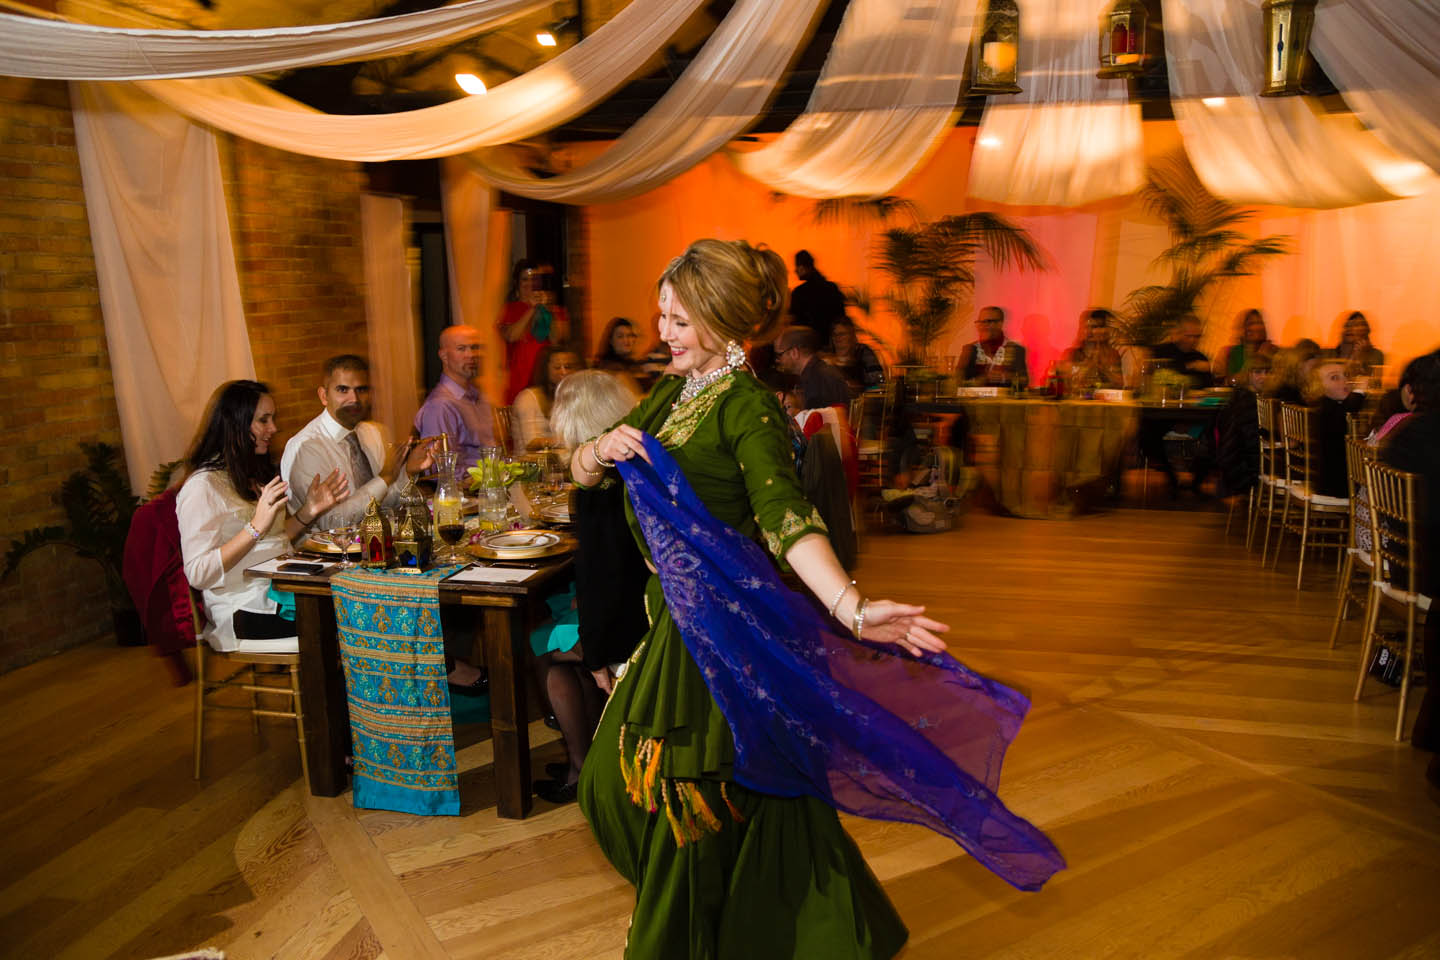 A belly dancer entertains the wedding party